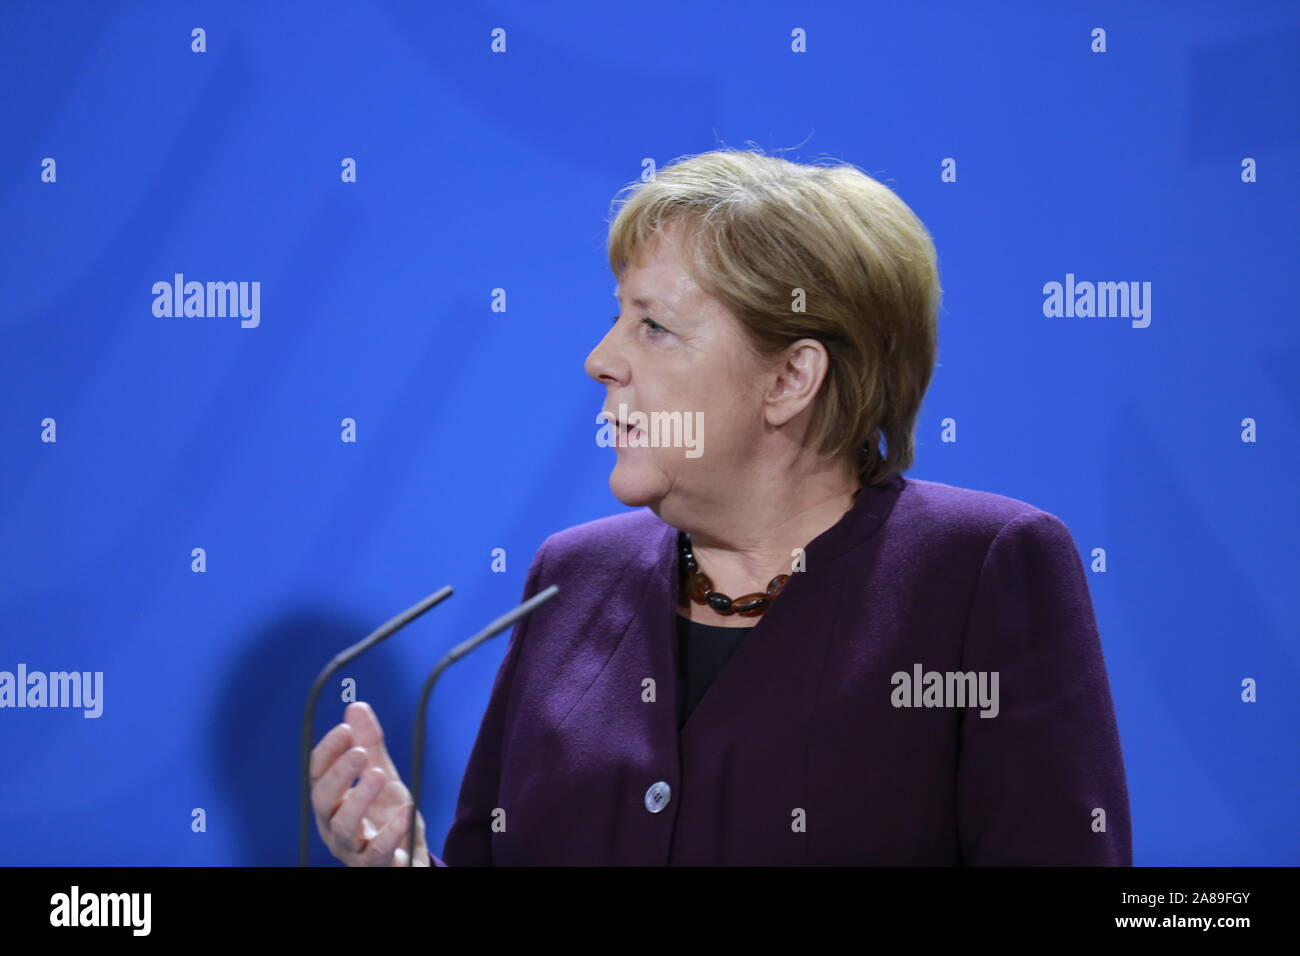 11/07/2019, Berlin, Germany, Chancellor Angela Merkel in the Chancellery. German Chancellor Angela Merkel receives NATO Secretary General Jens Stoltenberg on 7 November for a working visit to the Federal Chancellery. In addition to exchanging views on current issues, the exchange of views will include, in particular, the forthcoming NATO Heads of Government meeting in London on 3 and 4 December 2019, which celebrates the 70th anniversary of the Alliance. Stock Photo